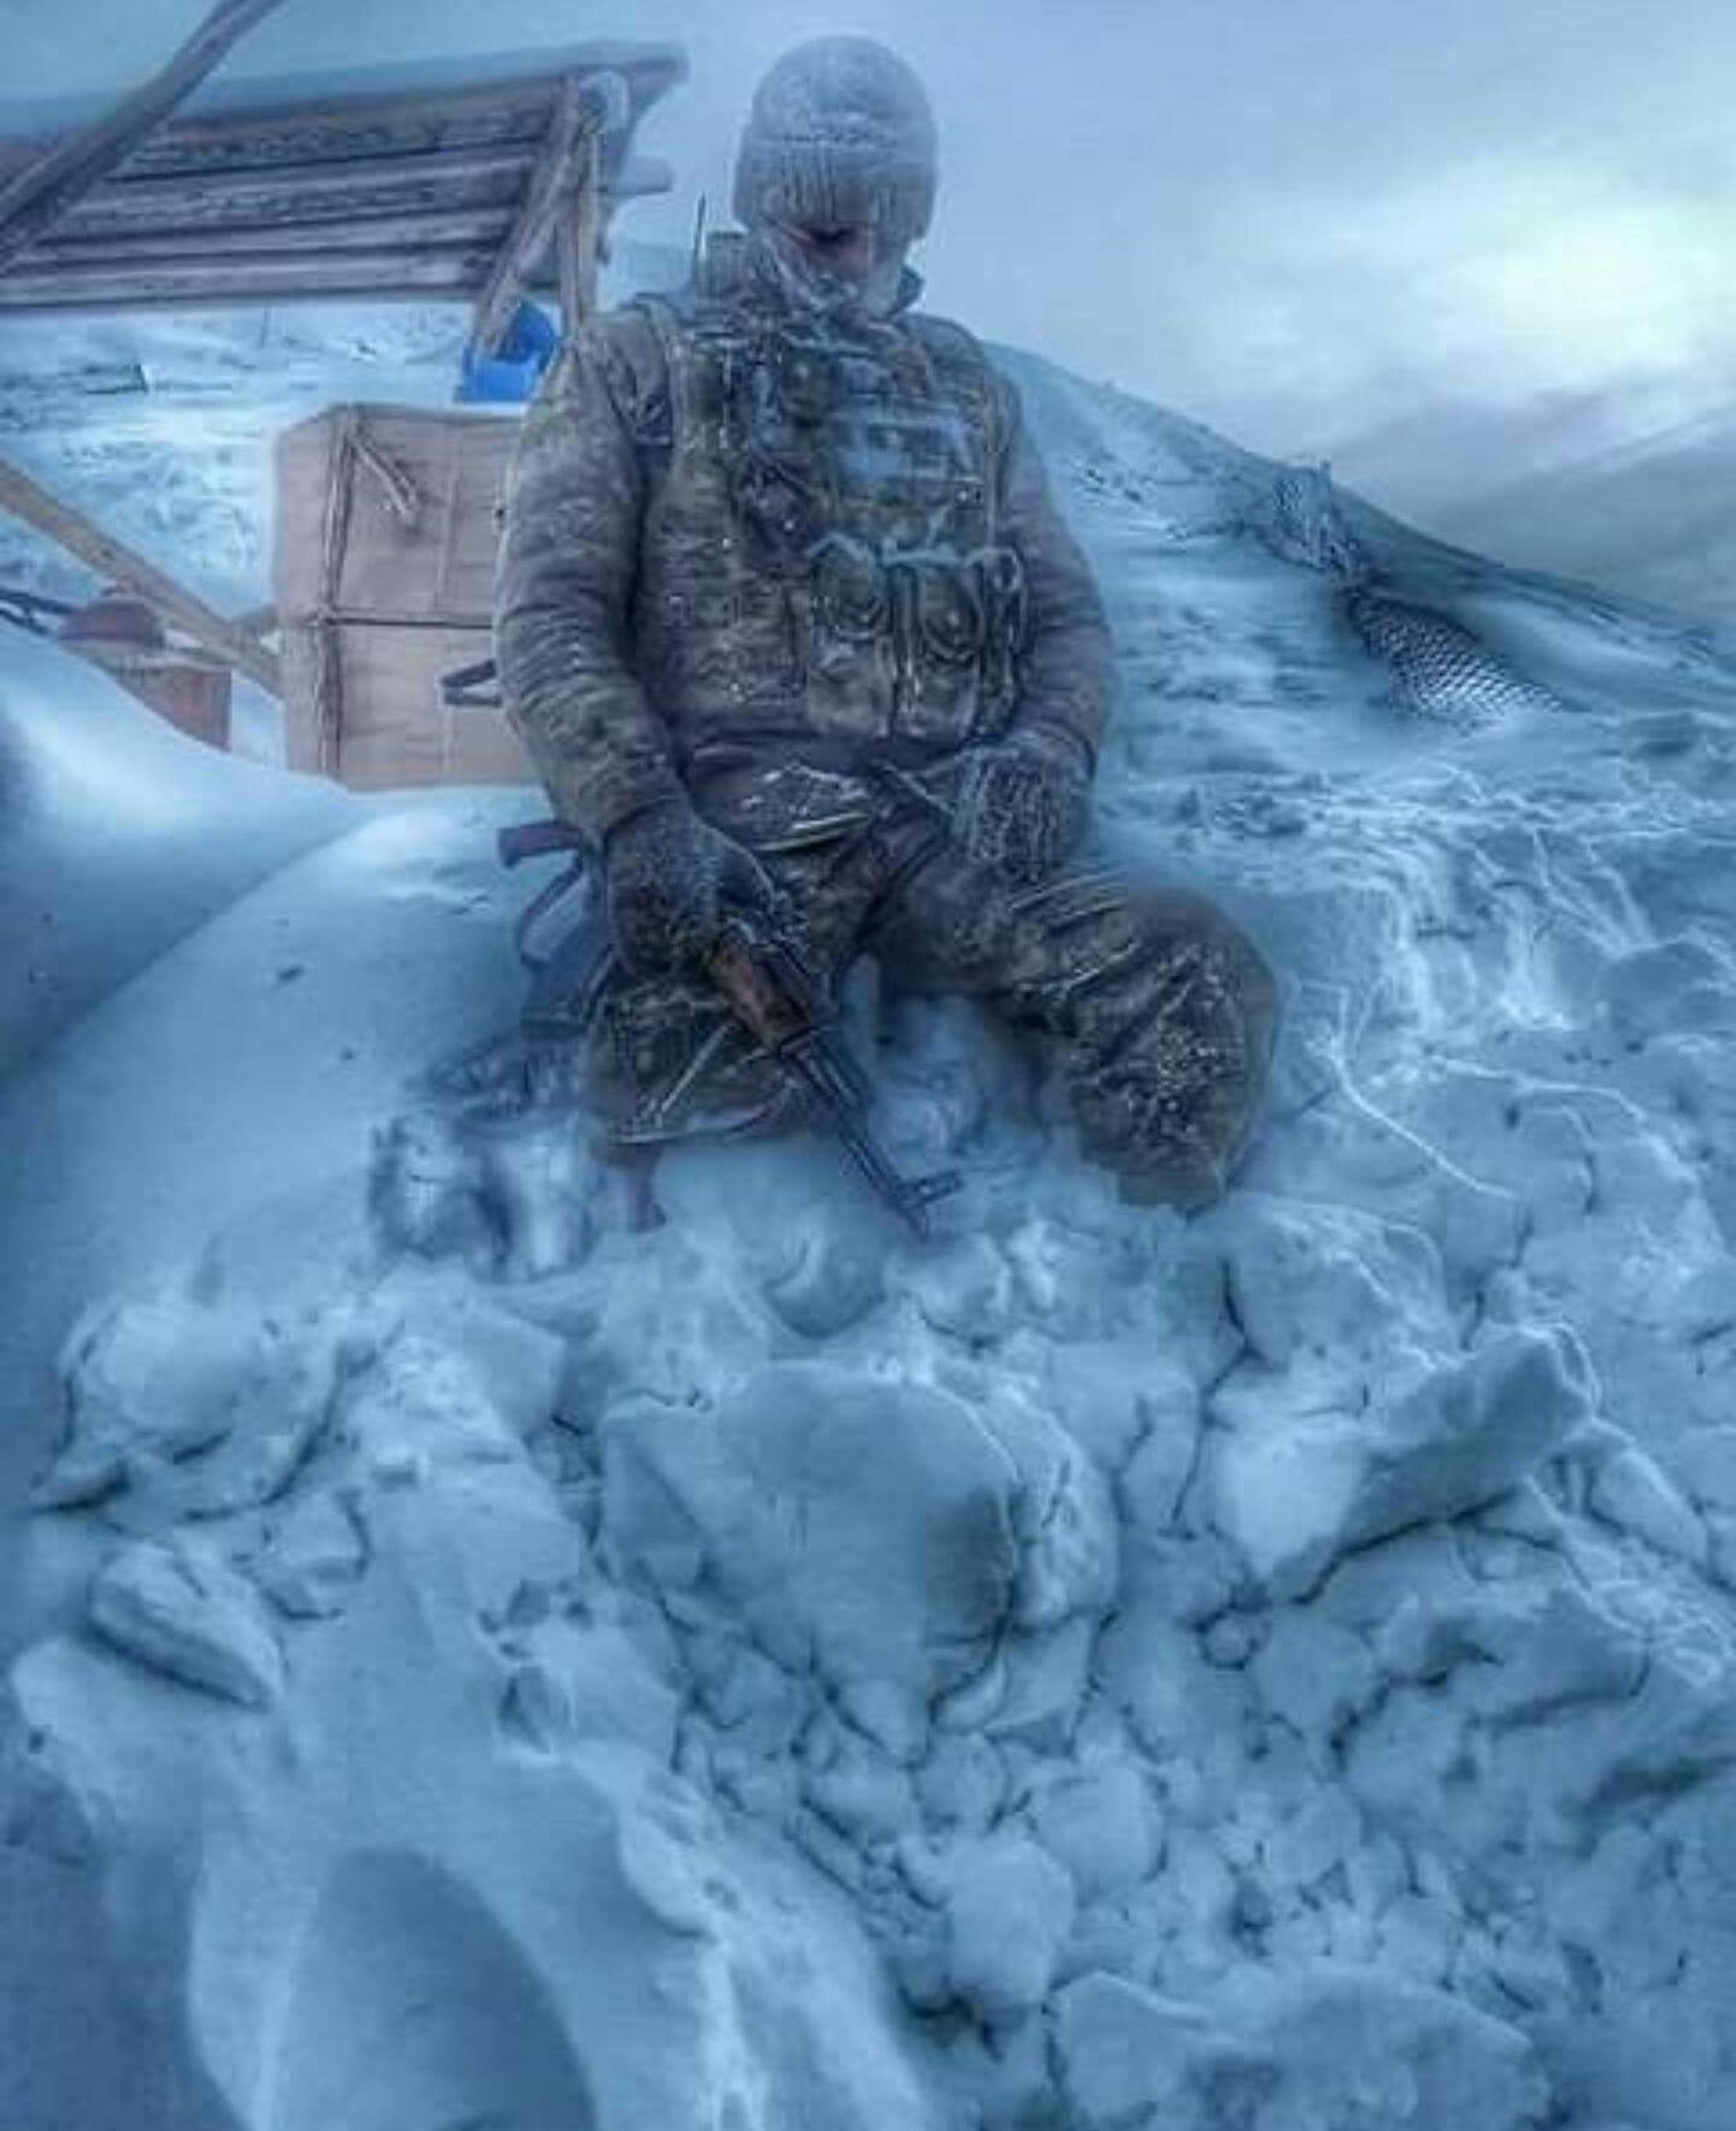 winter, snow, cold temperature, ice, close-up, one person, only men, one man only, people, nature, outdoors, military uniform, day